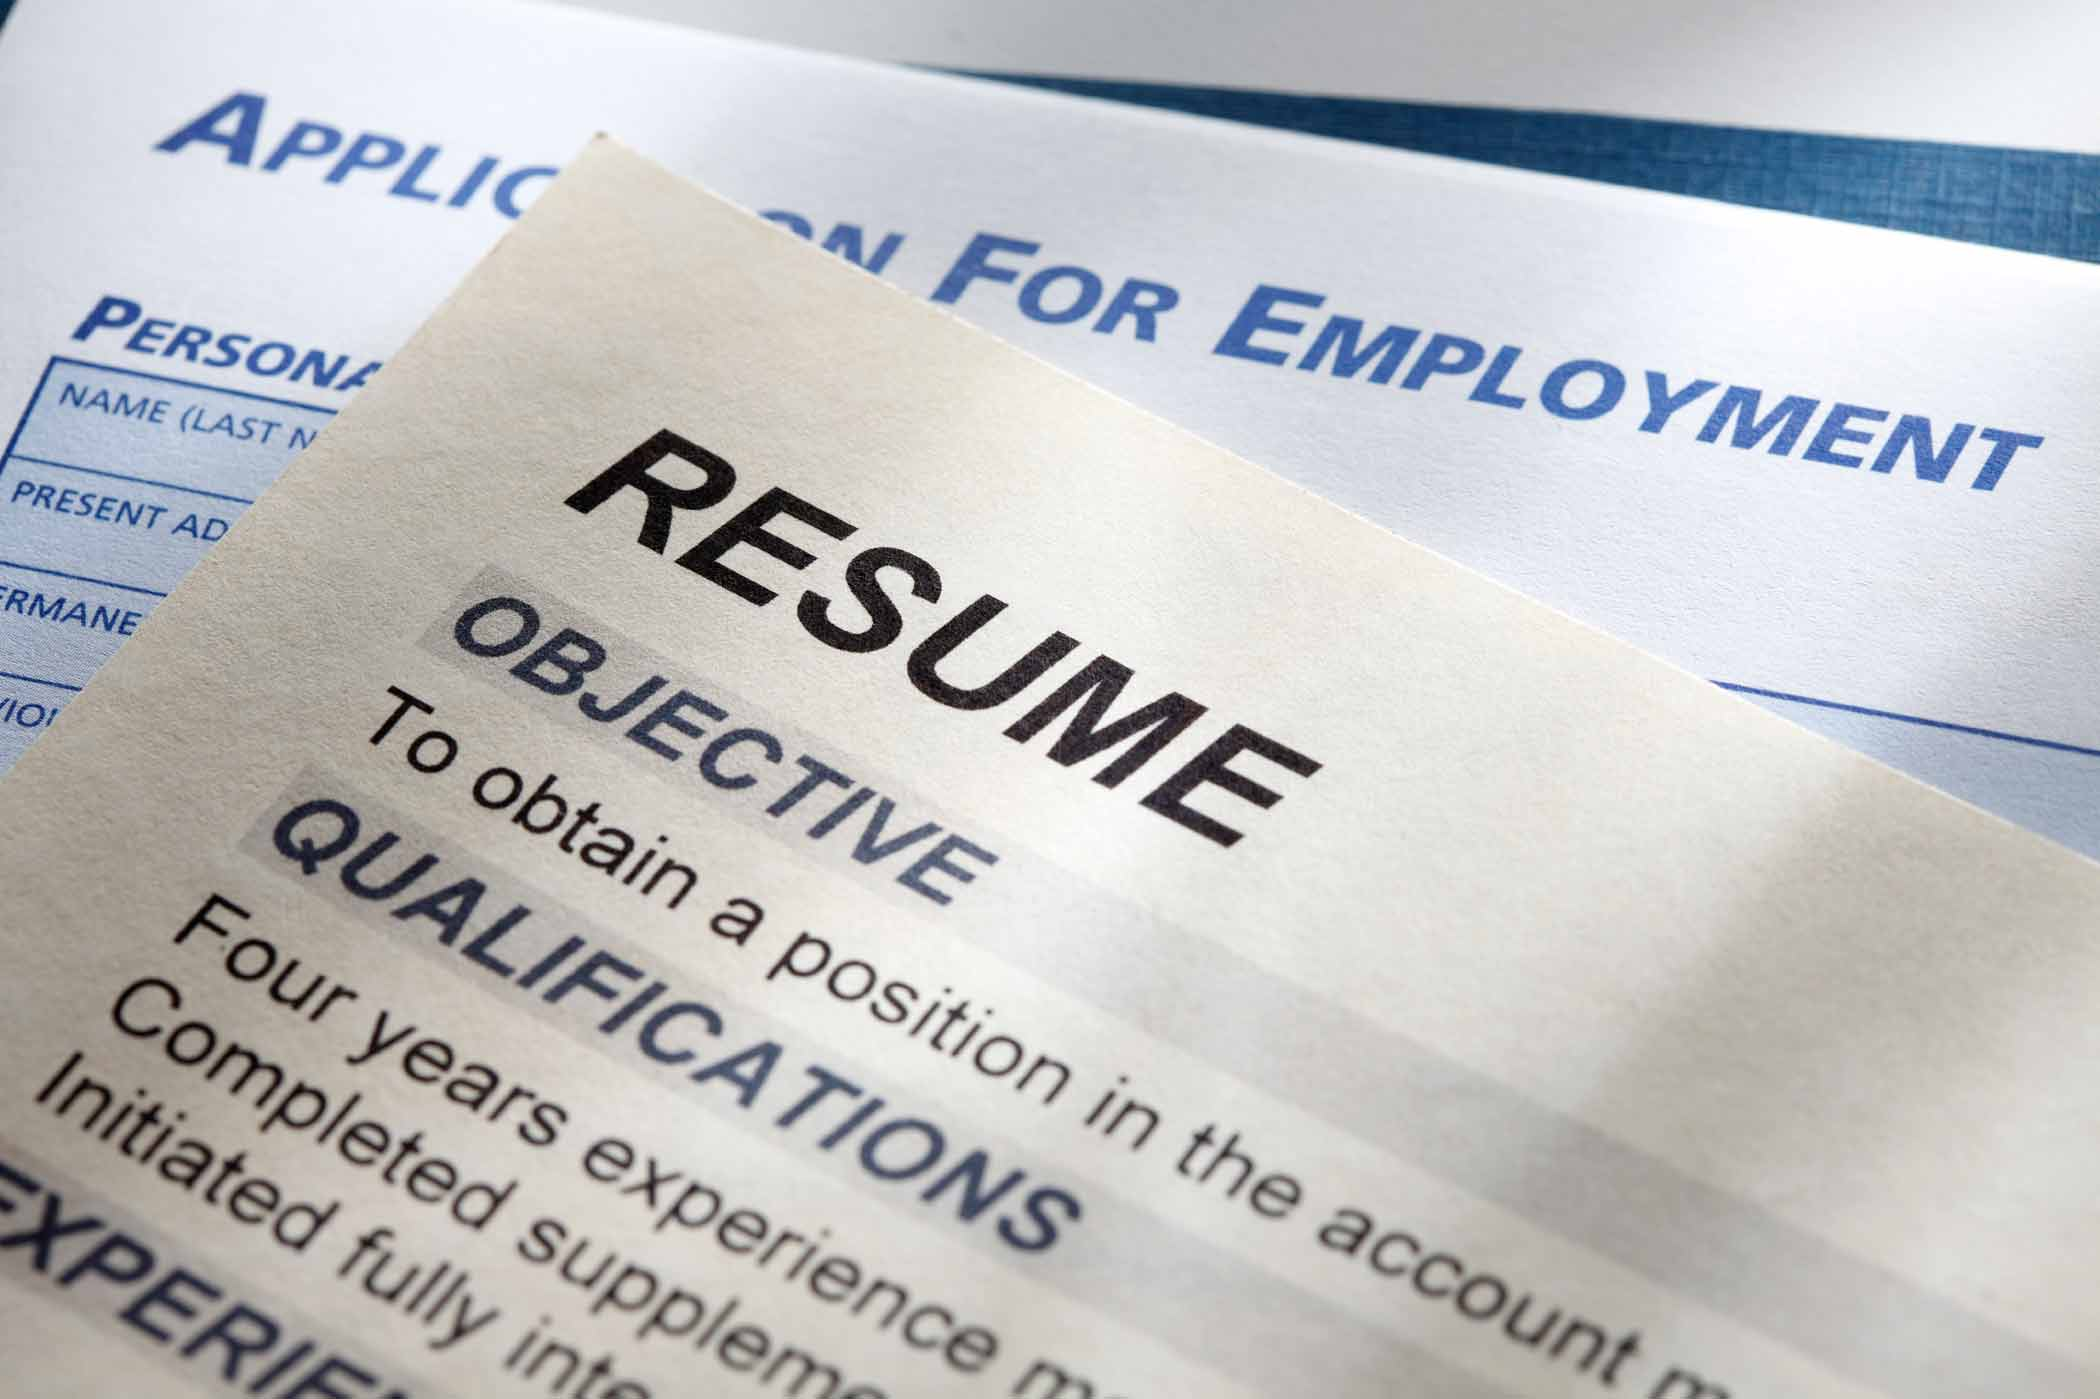 writing good resume View our resume expert's top 10 resume writing tips before writing your resume, review our free tips and ensure your resume will stand out from the crowd our tips.